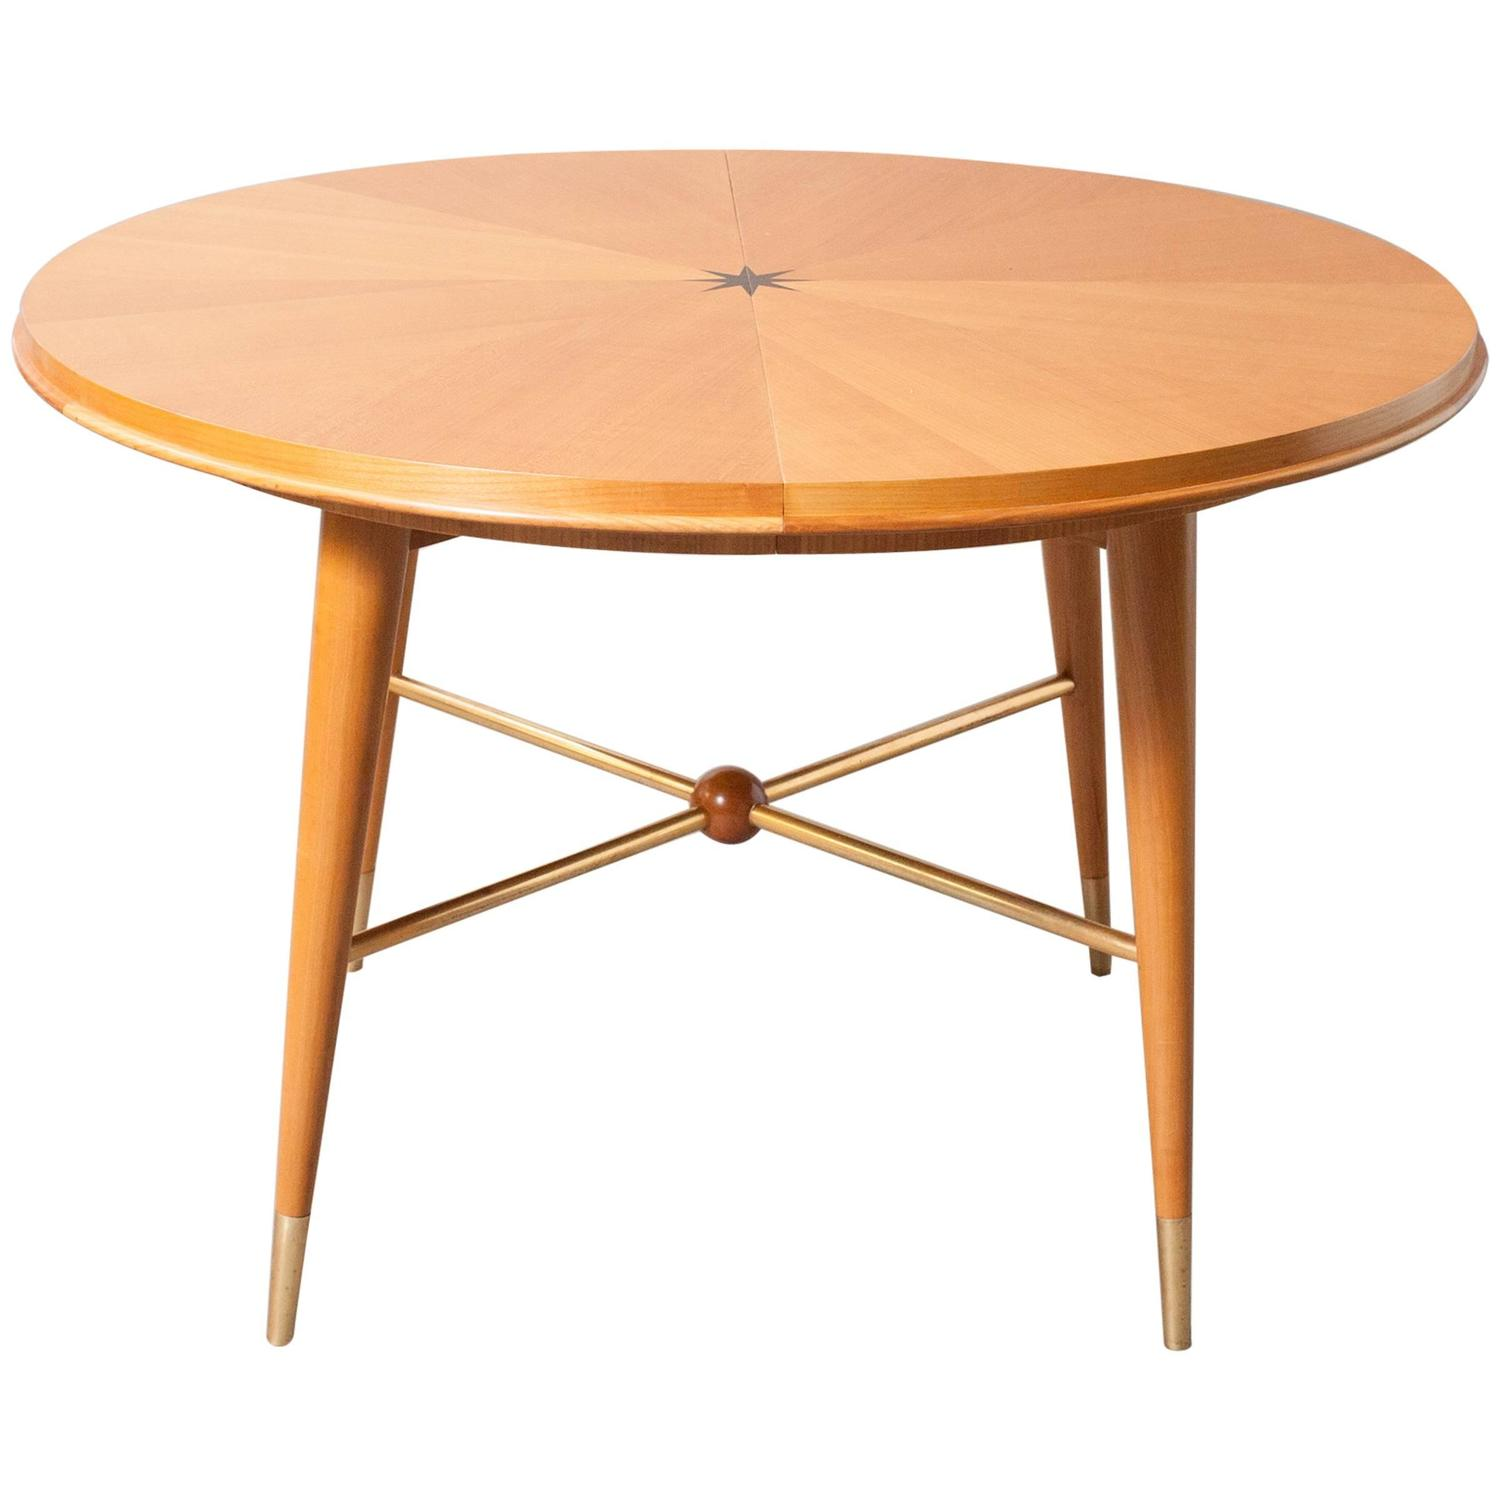 Italian modern dining table for sale at 1stdibs for Modern dining tables sale